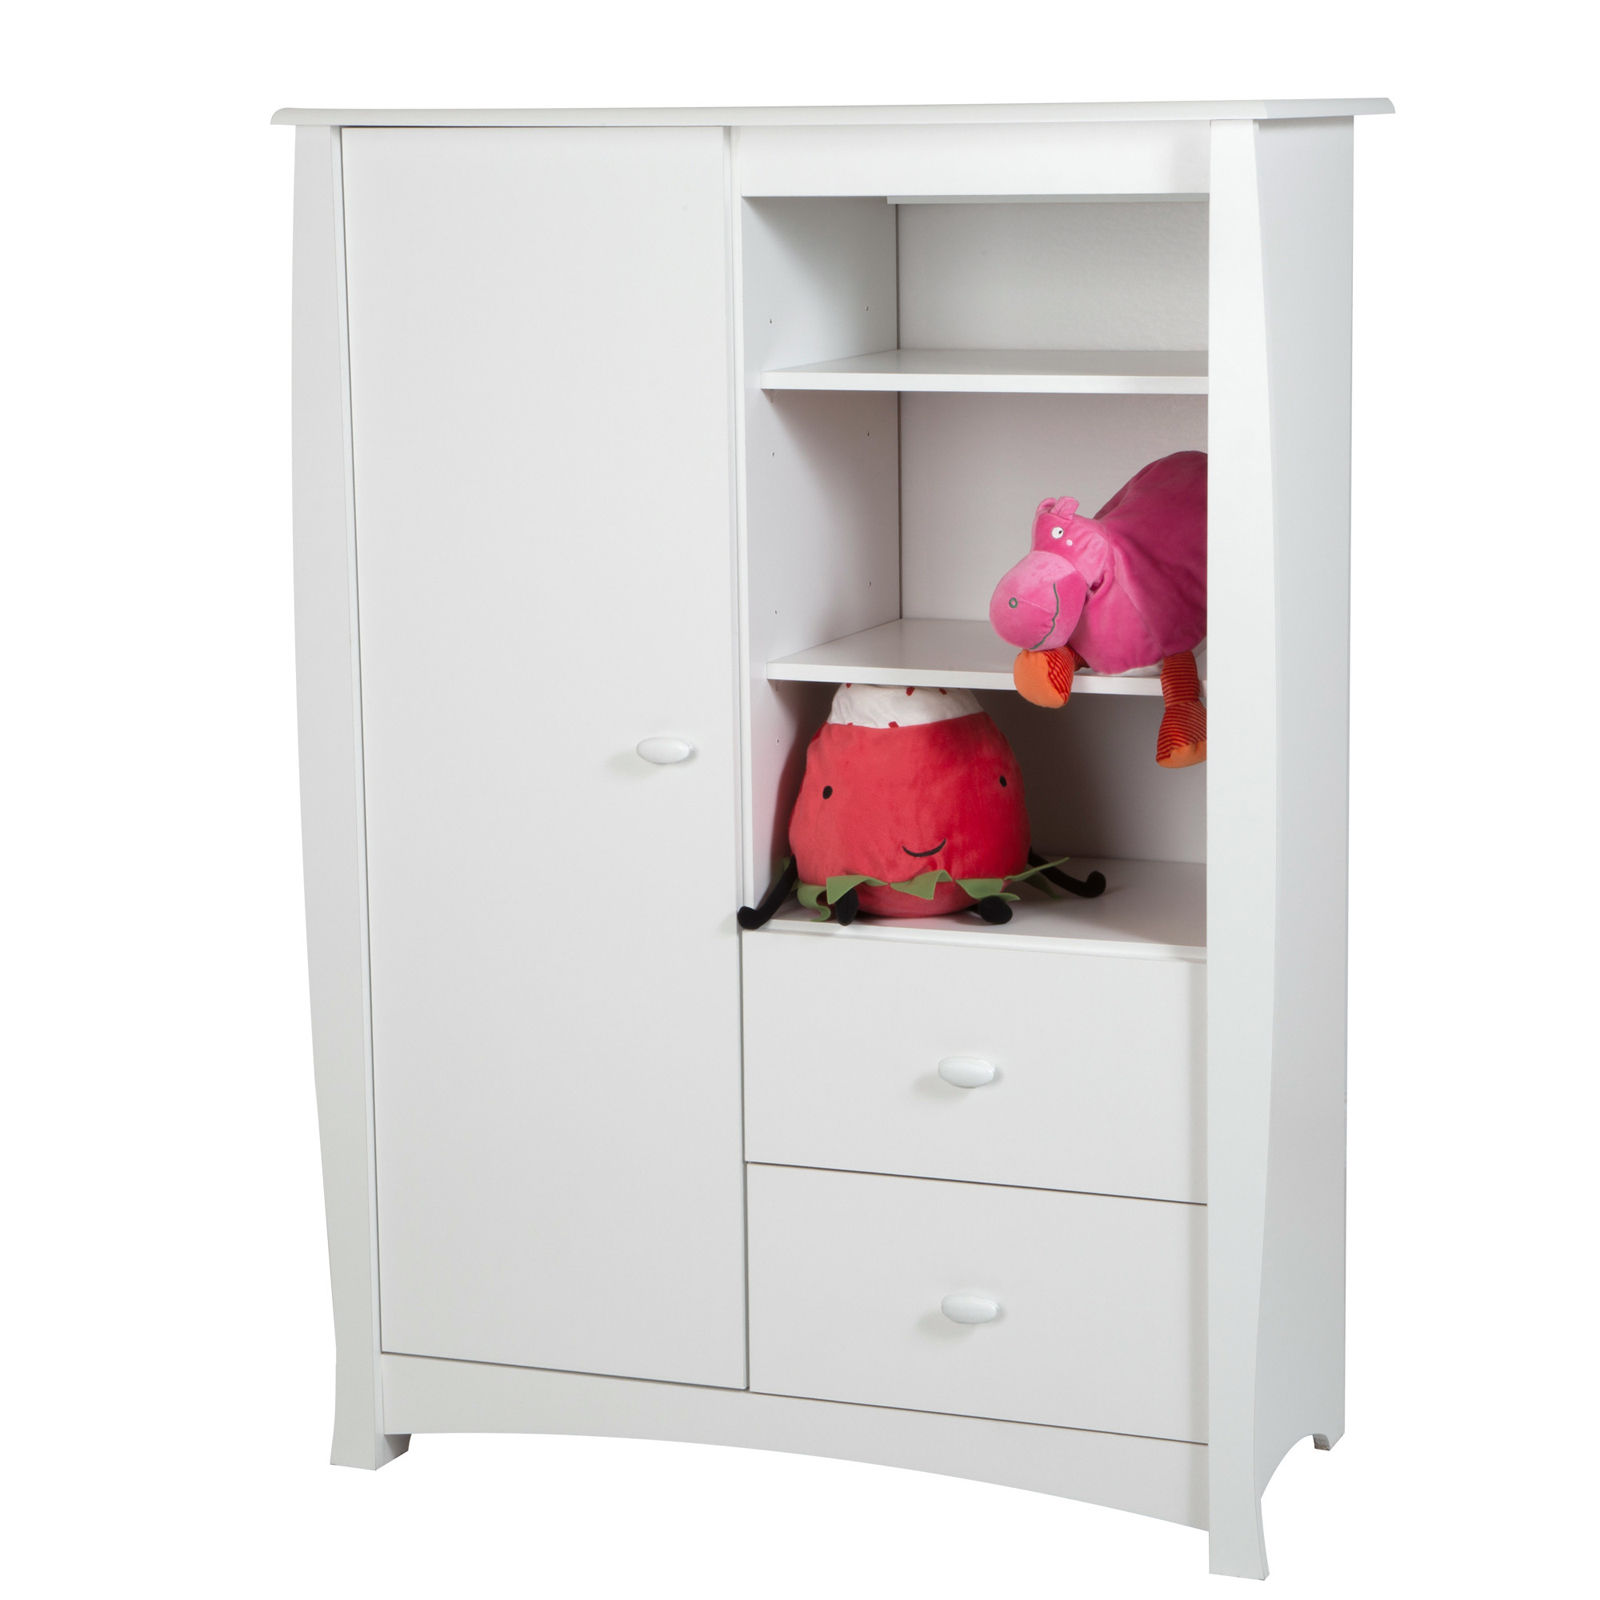 Children's Bedroom Wardrobe Cabinet